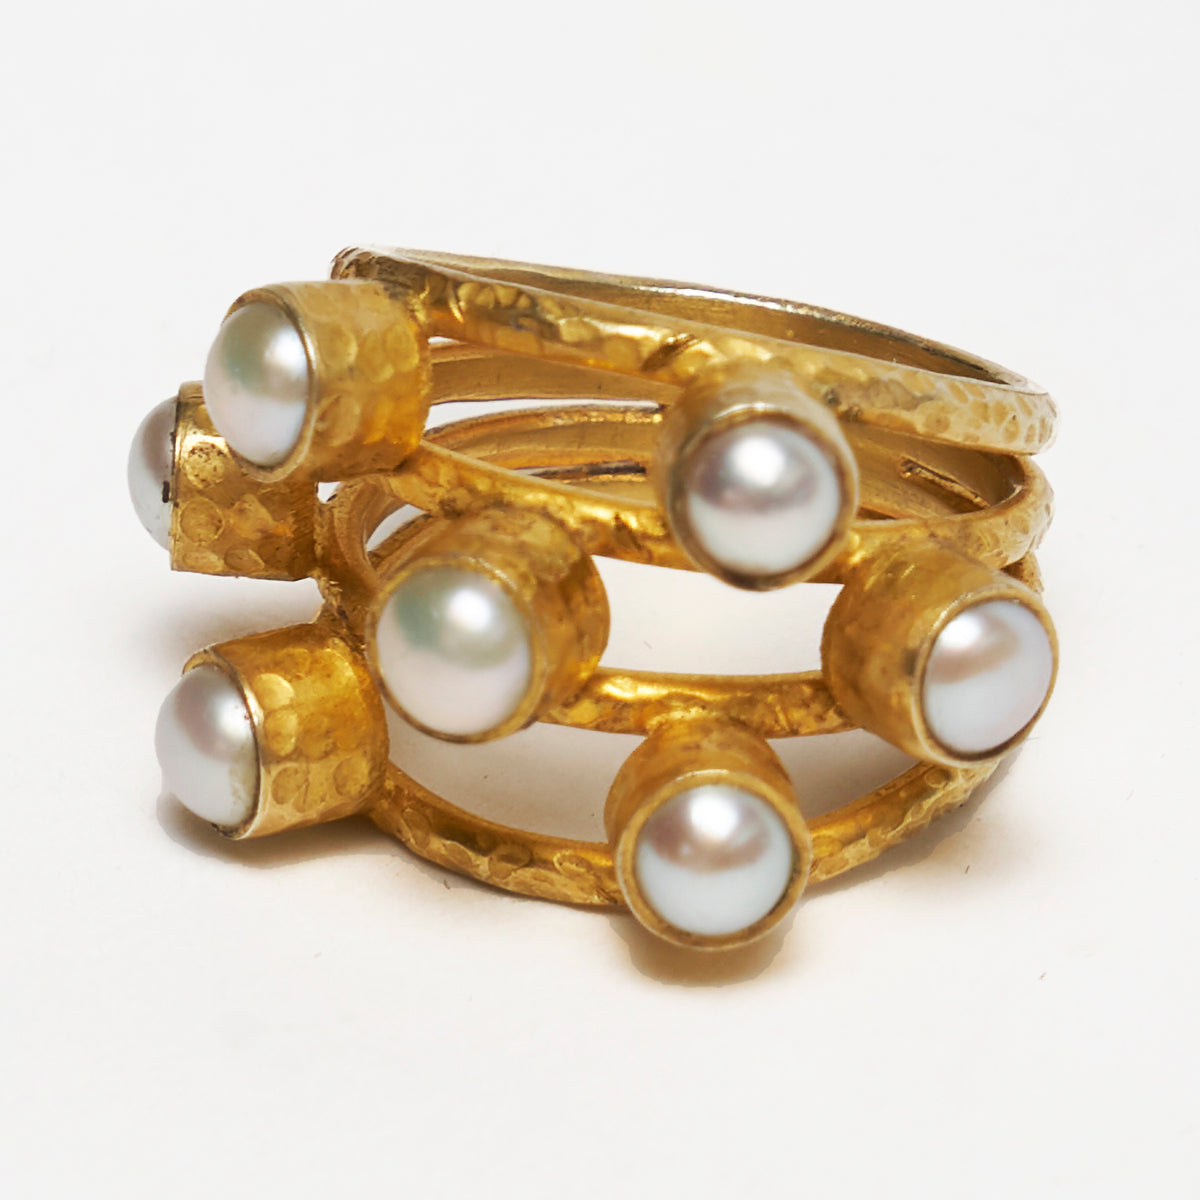 Pearl, Gold, and Fabulousness ring